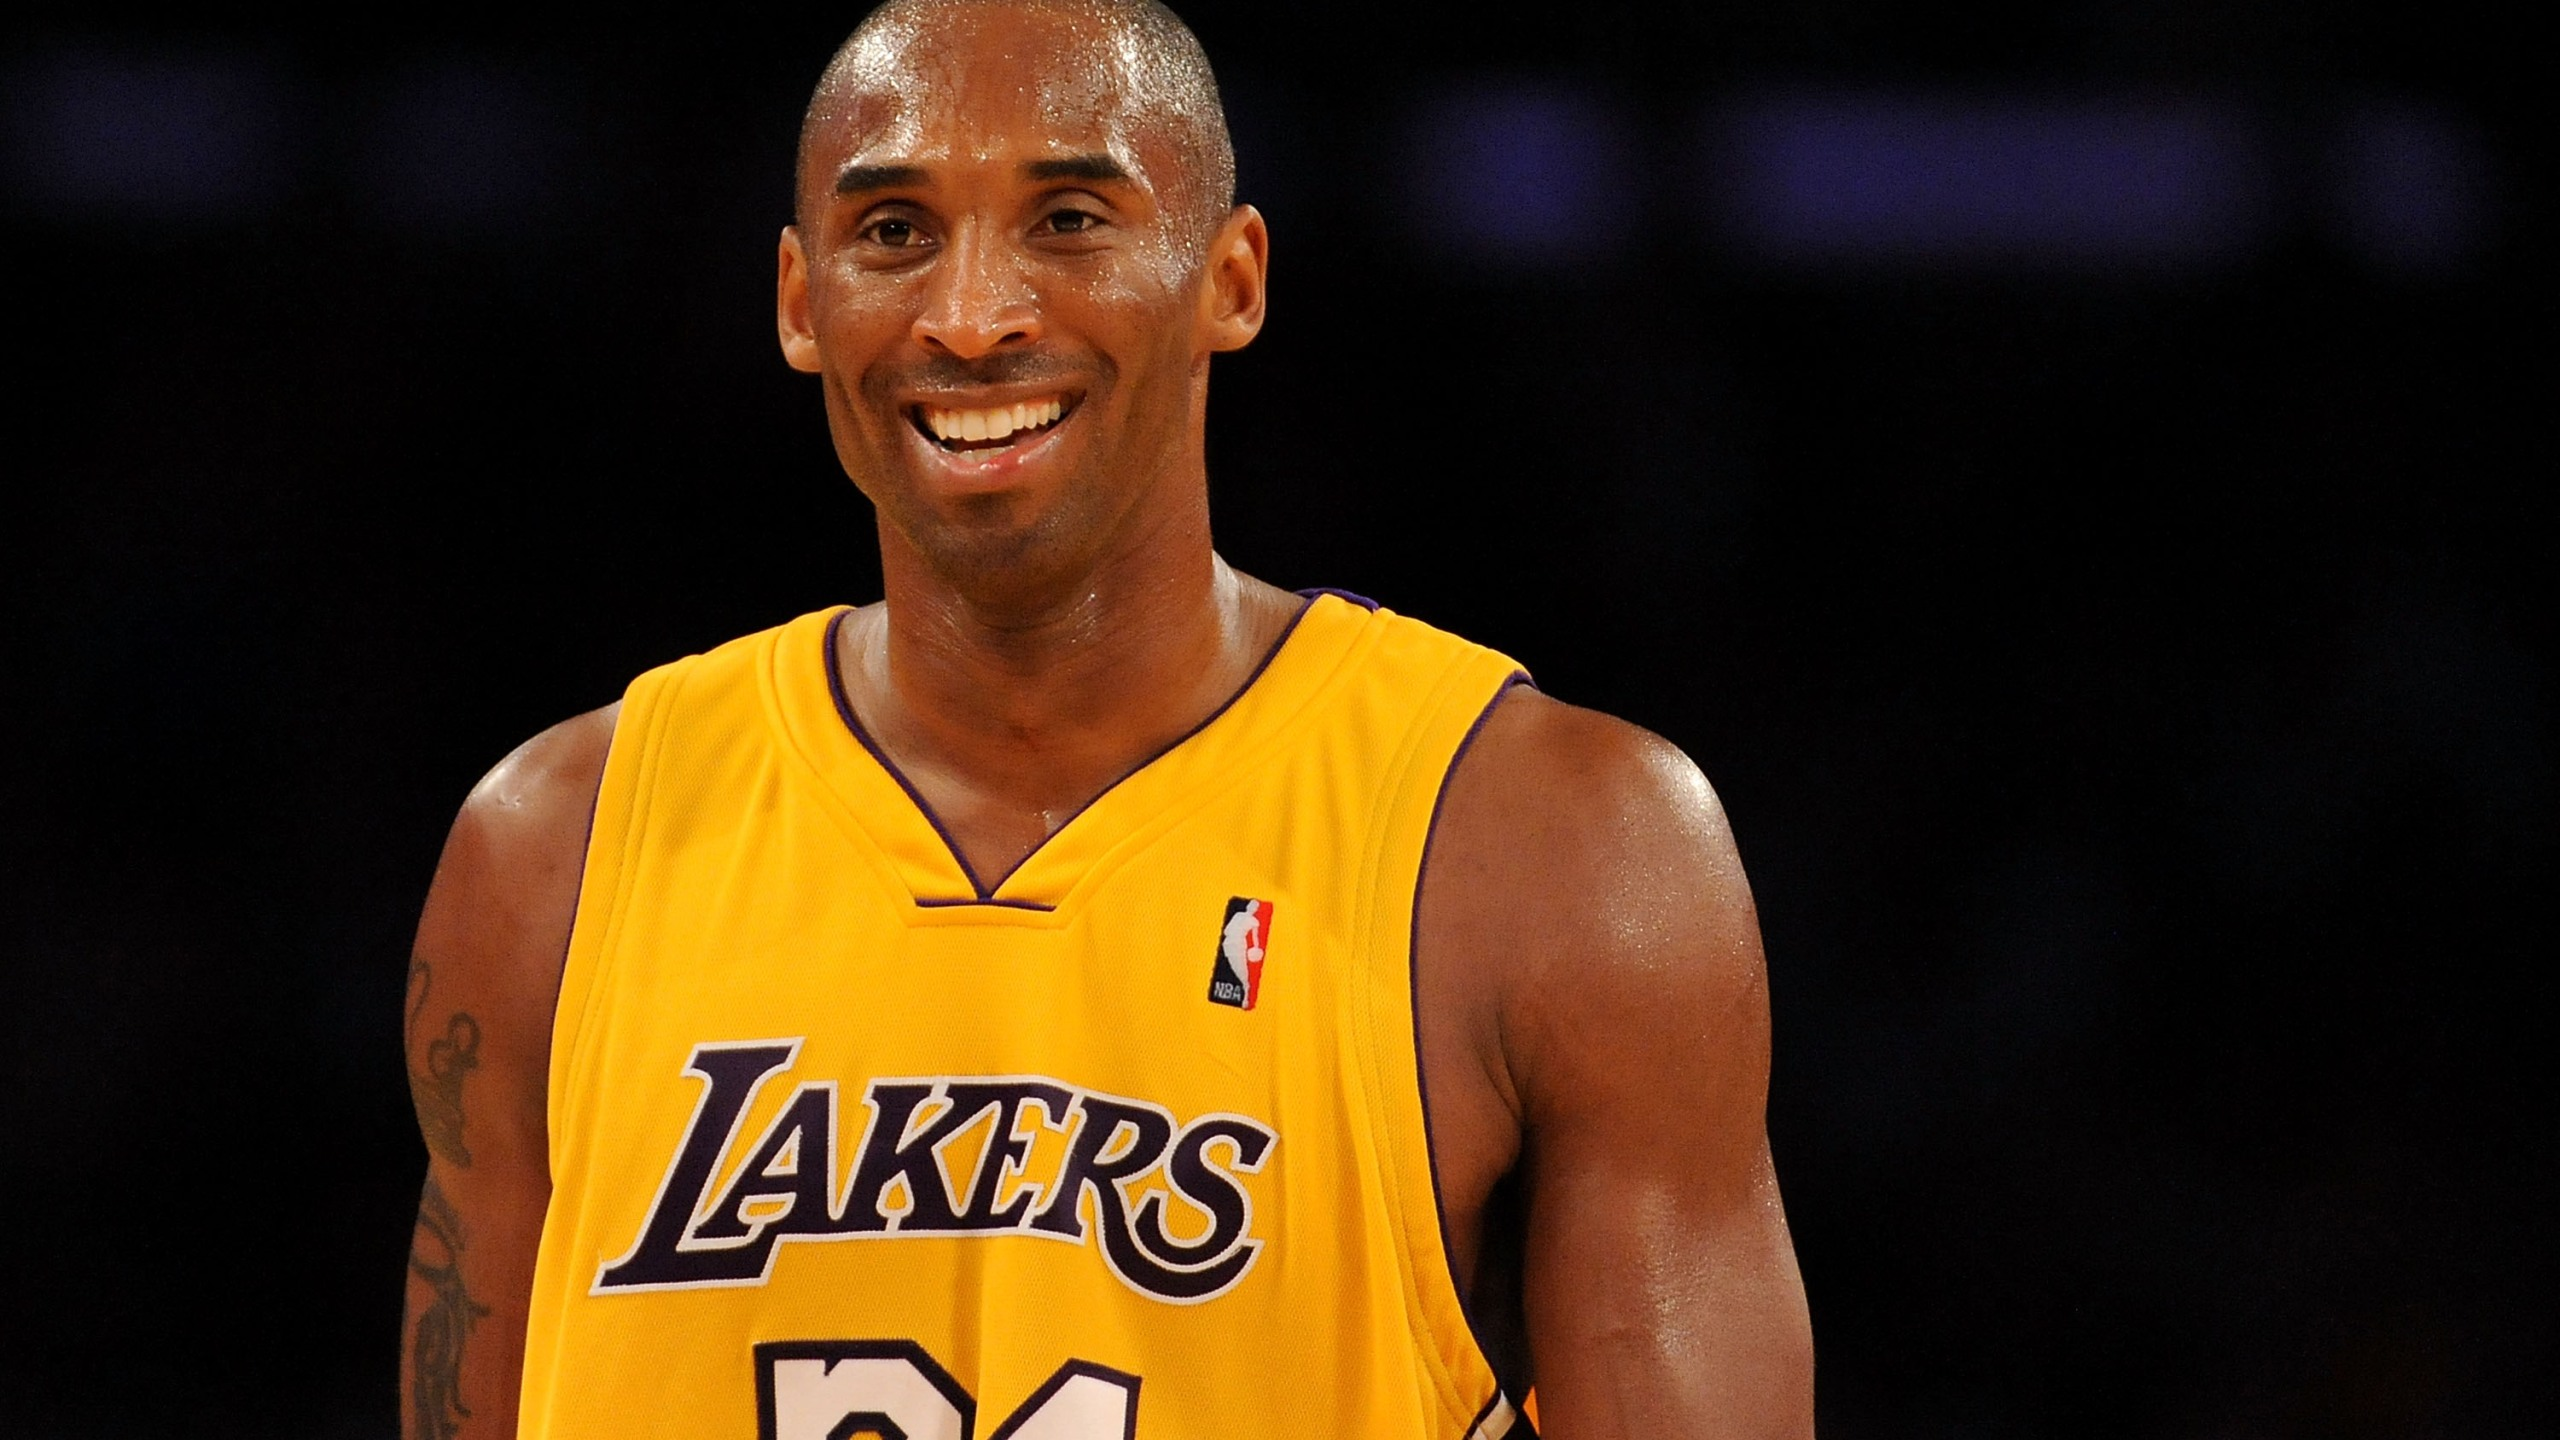 Kobe Bryant of the Los Angeles Lakers smiles during a game against the Chicago Bulls on Nov. 19, 2009 at Staples Center in Los Angeles. (Harry How/Getty Images)